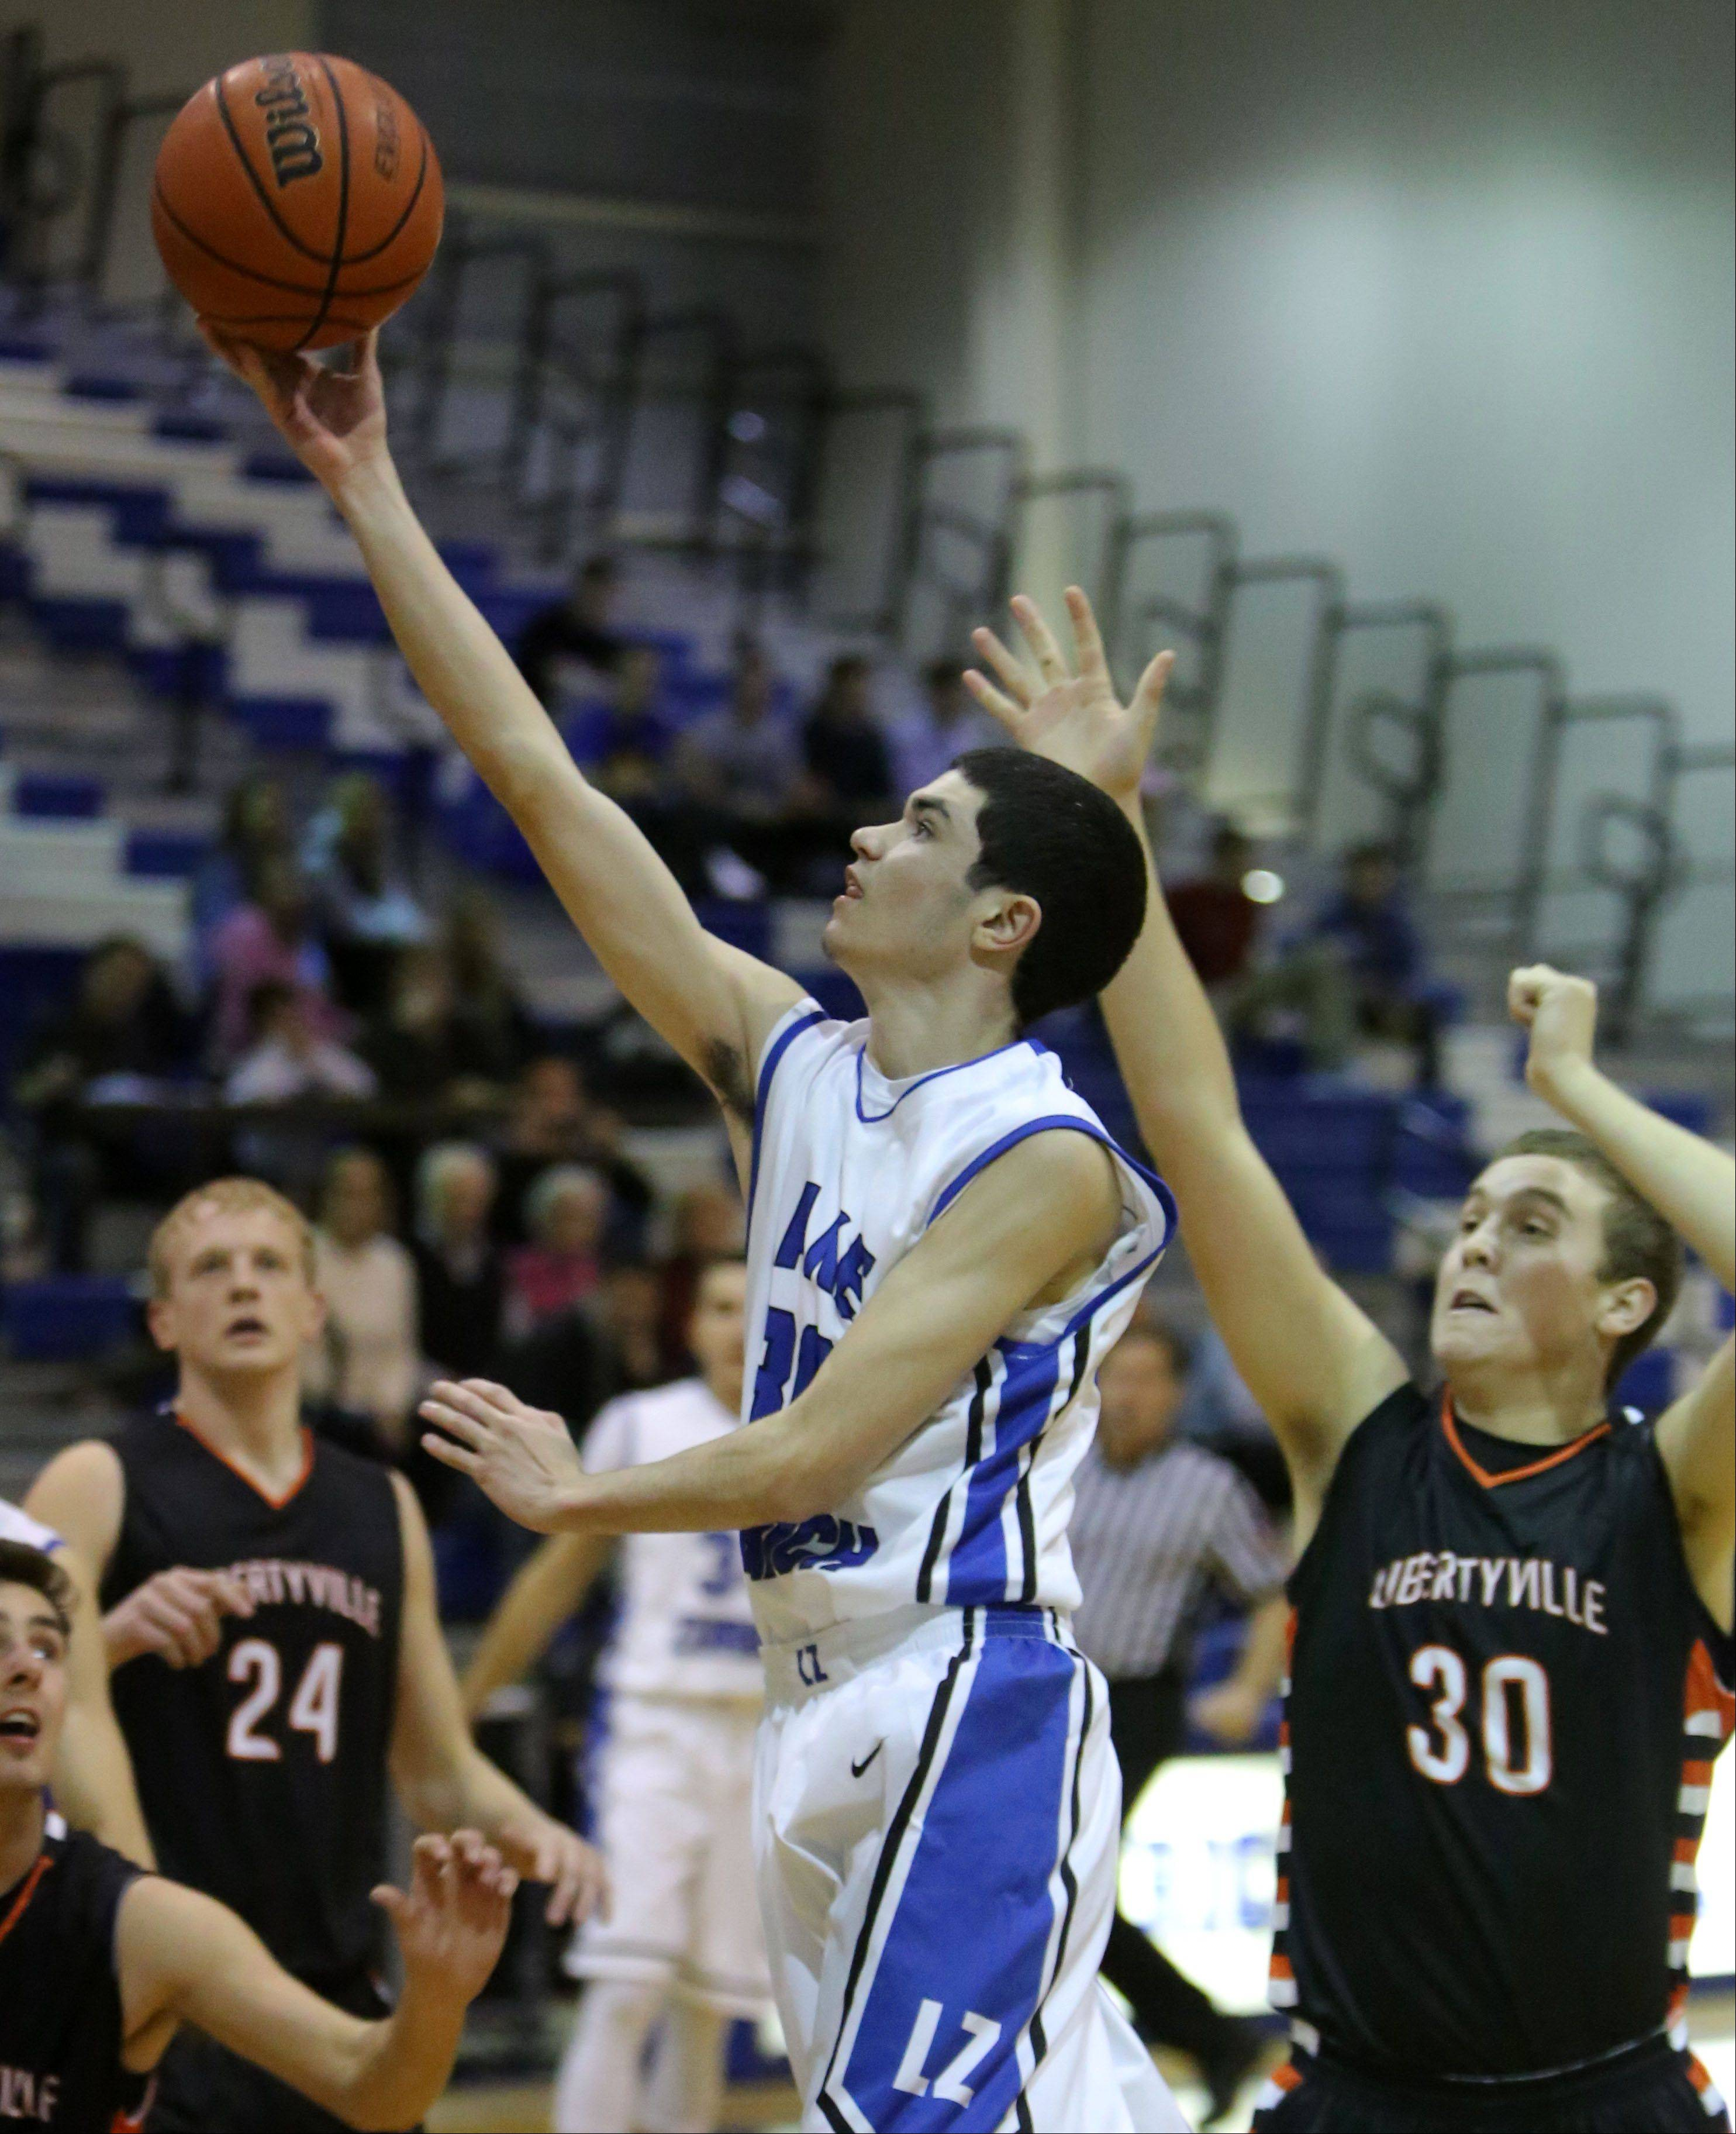 Lake Zurich's Jack O'Neill, left, drives past Libertyville's Ben Kimpler on Wednesday night at Lake Zurich High School.